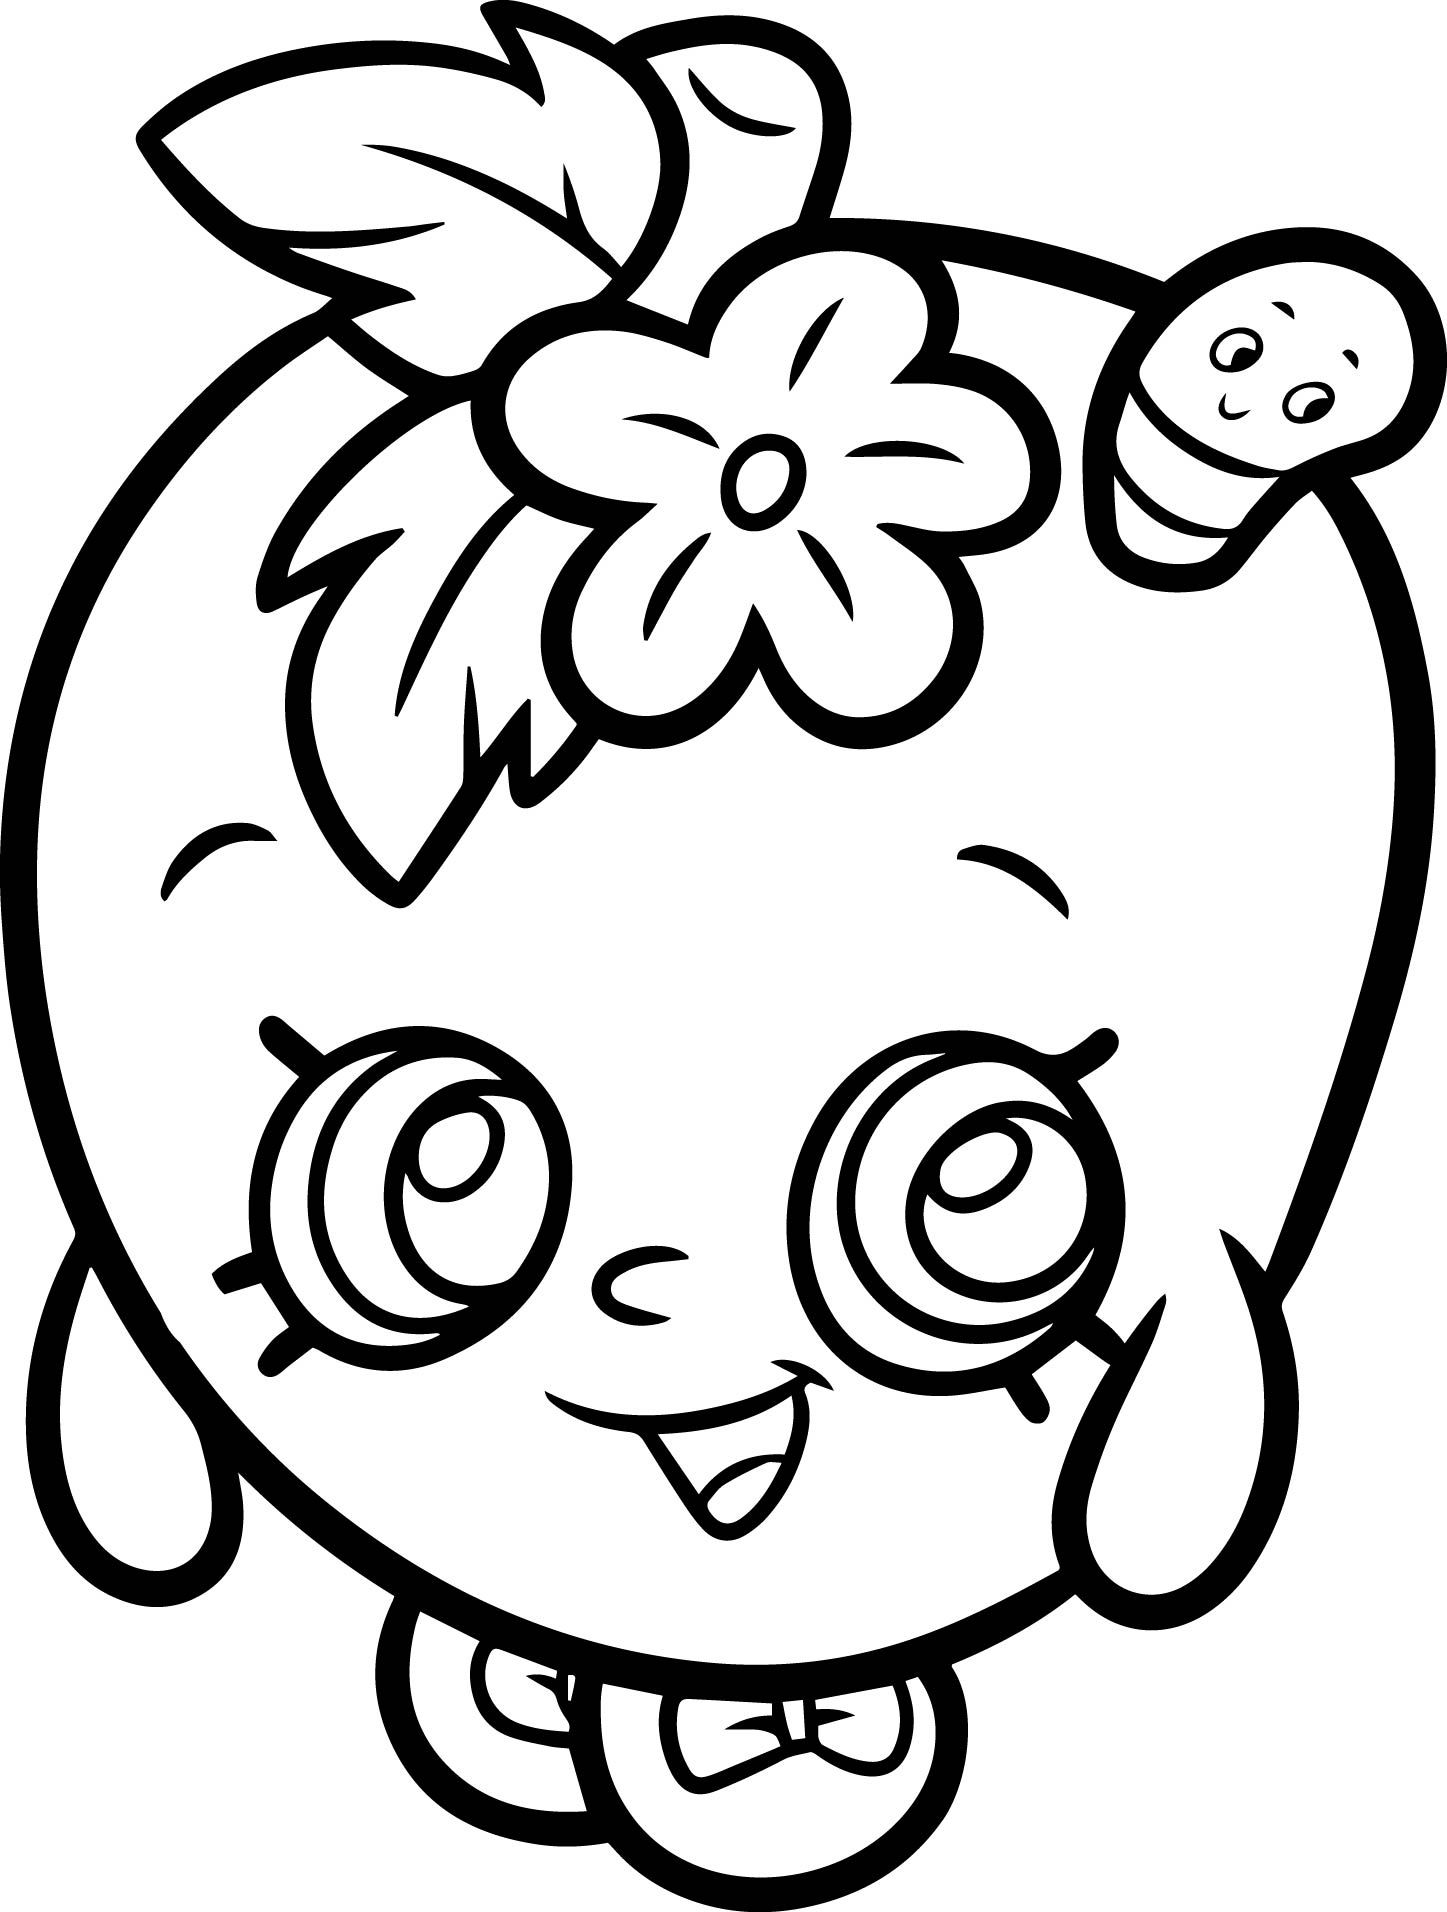 Apple Blossom From Shopkins Coloring Page Emoji Coloring Pages